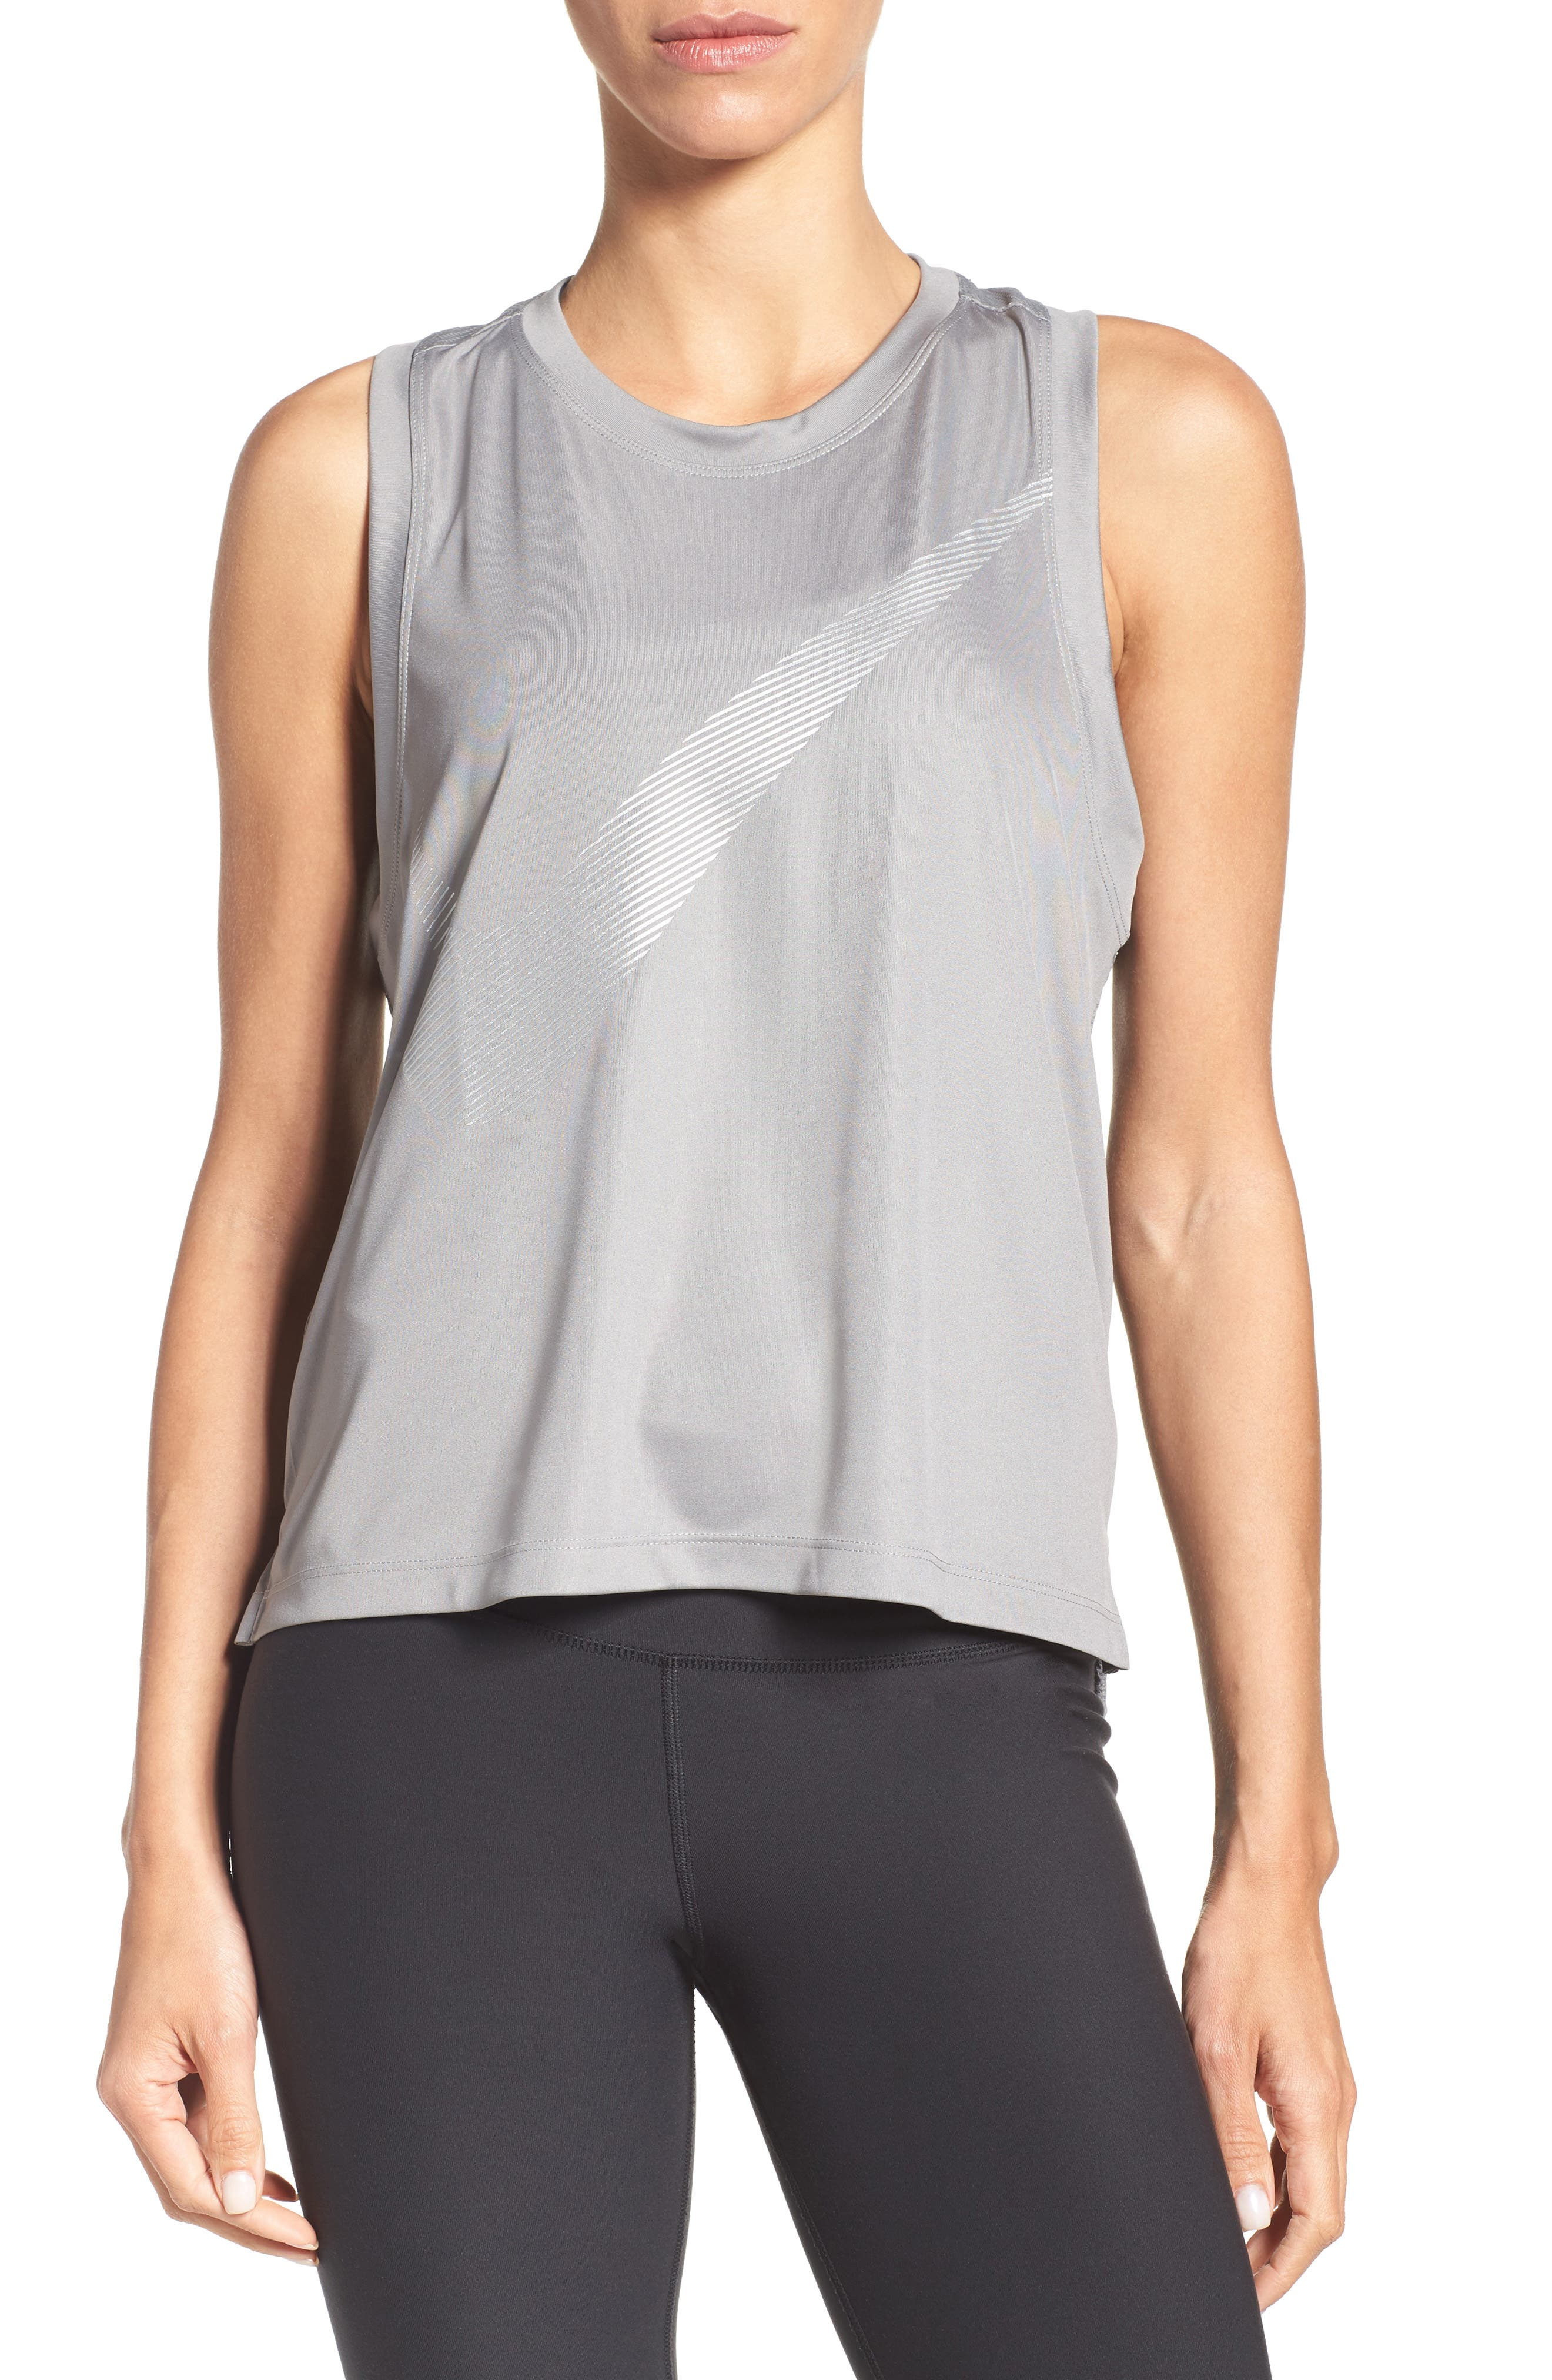 Dry City Running Tank,                             Main thumbnail 1, color,                             023